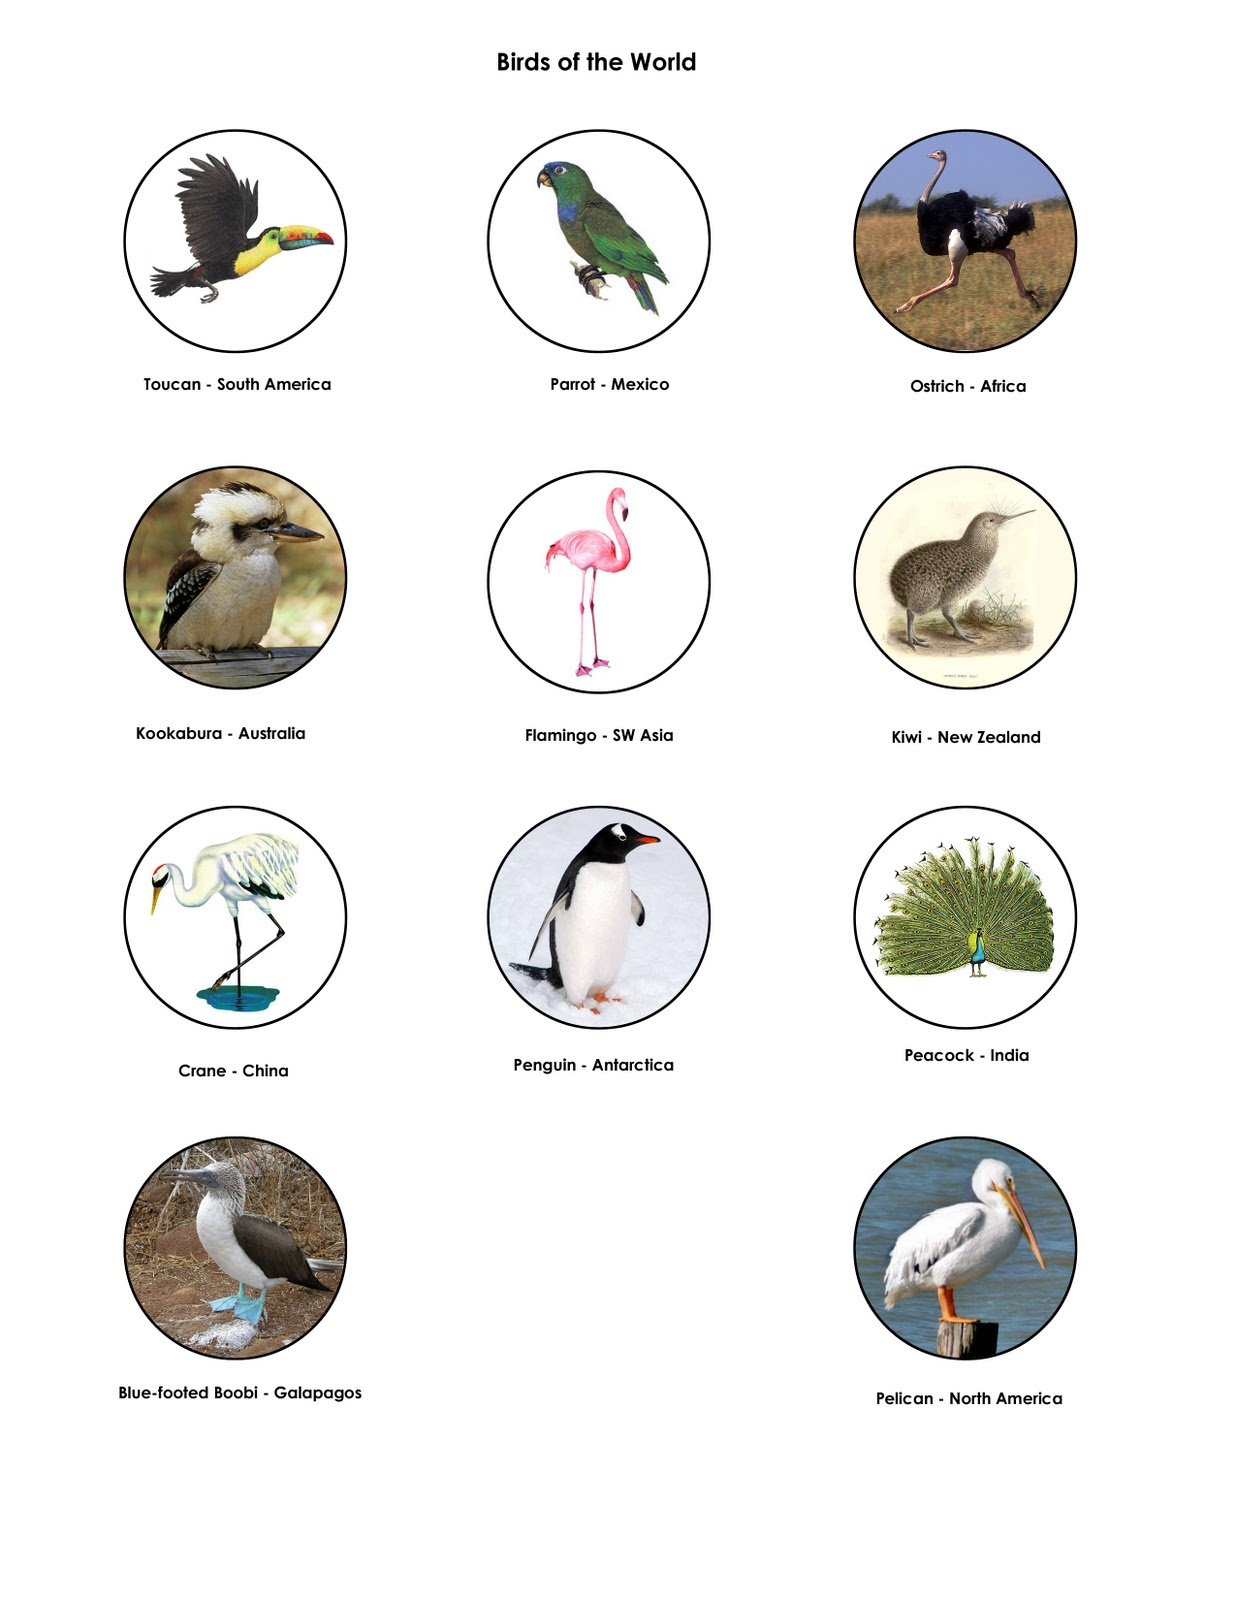 types of birds and their names